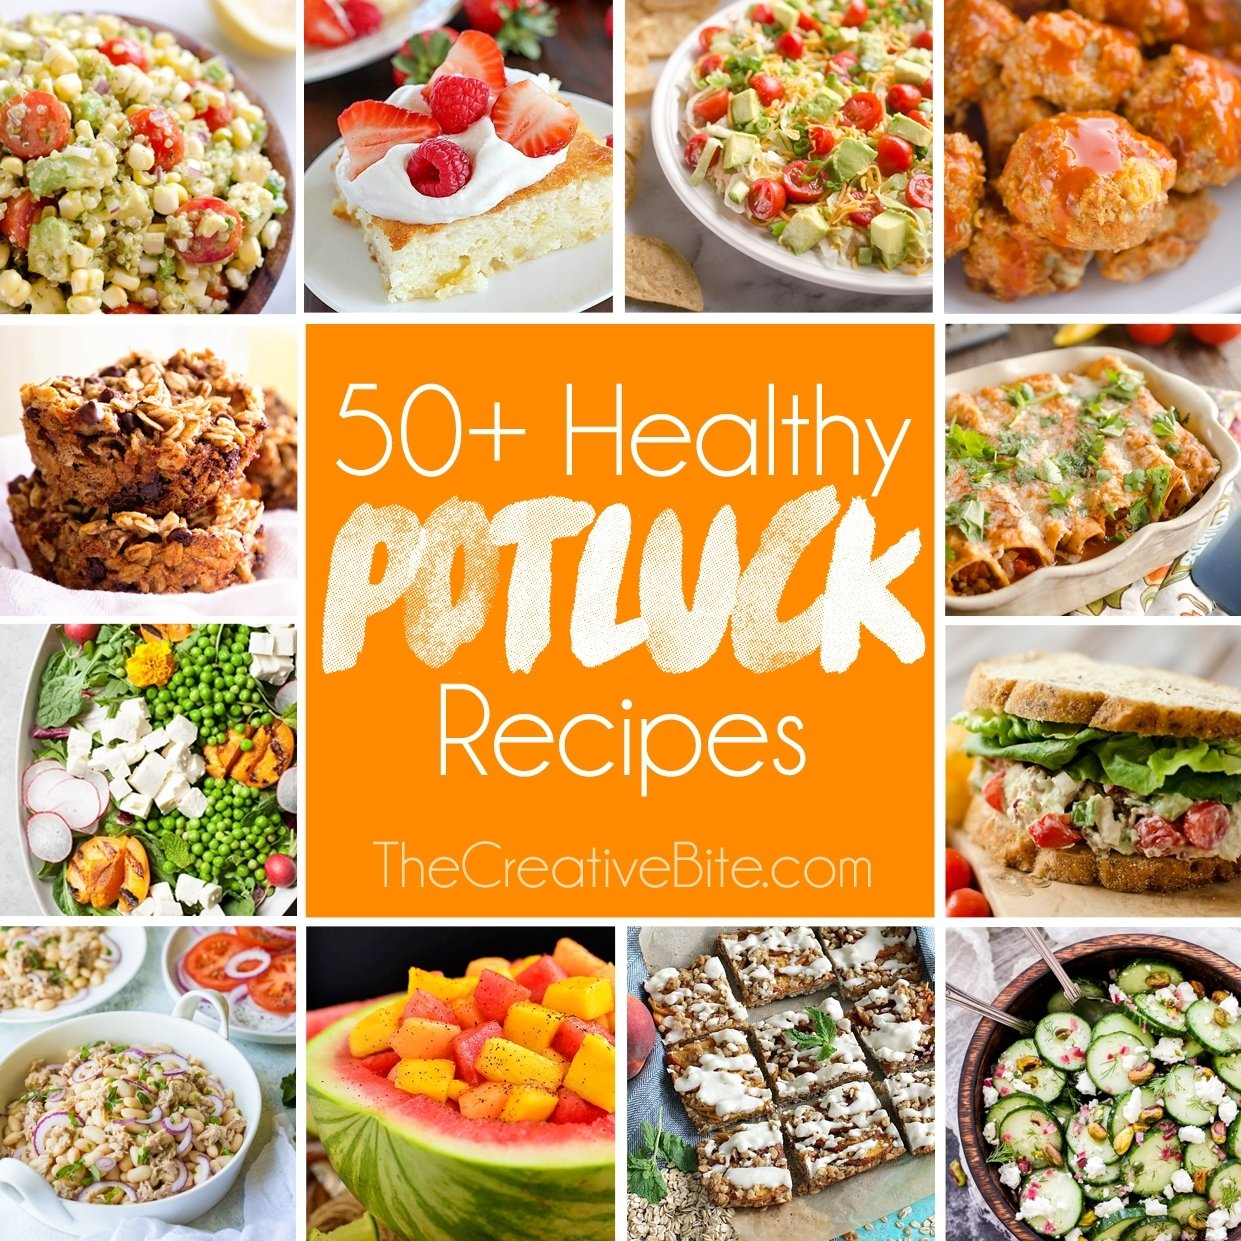 10 Ideal Potluck Food Ideas For Work 50 light healthy potluck recipes 4 2020